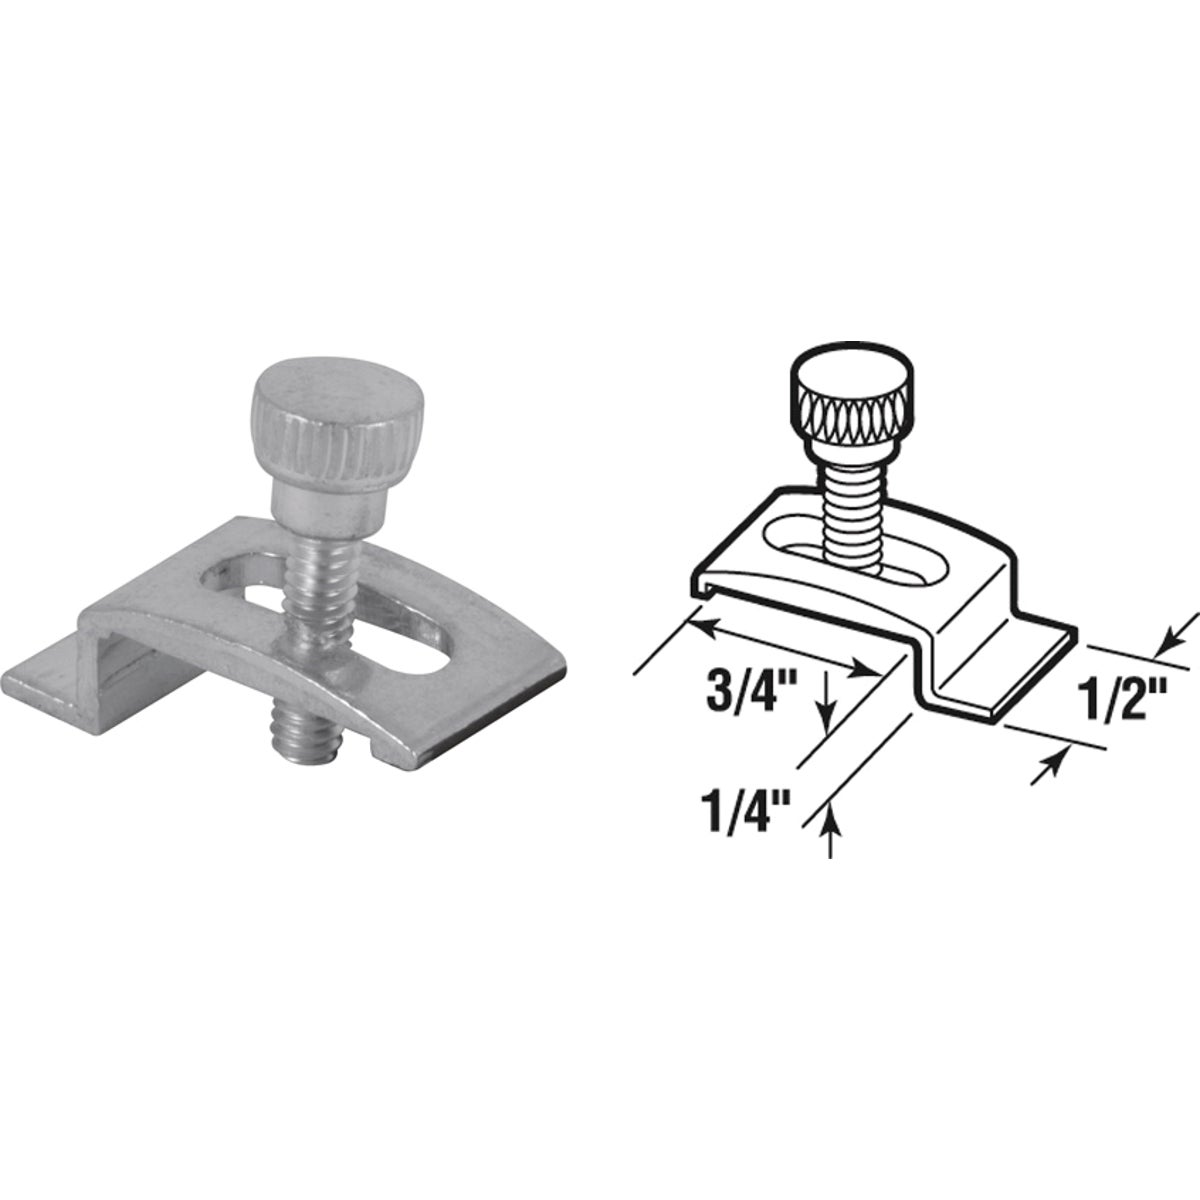 STORM WINDOW PANEL CLIPS - 181041 by Prime Line Products